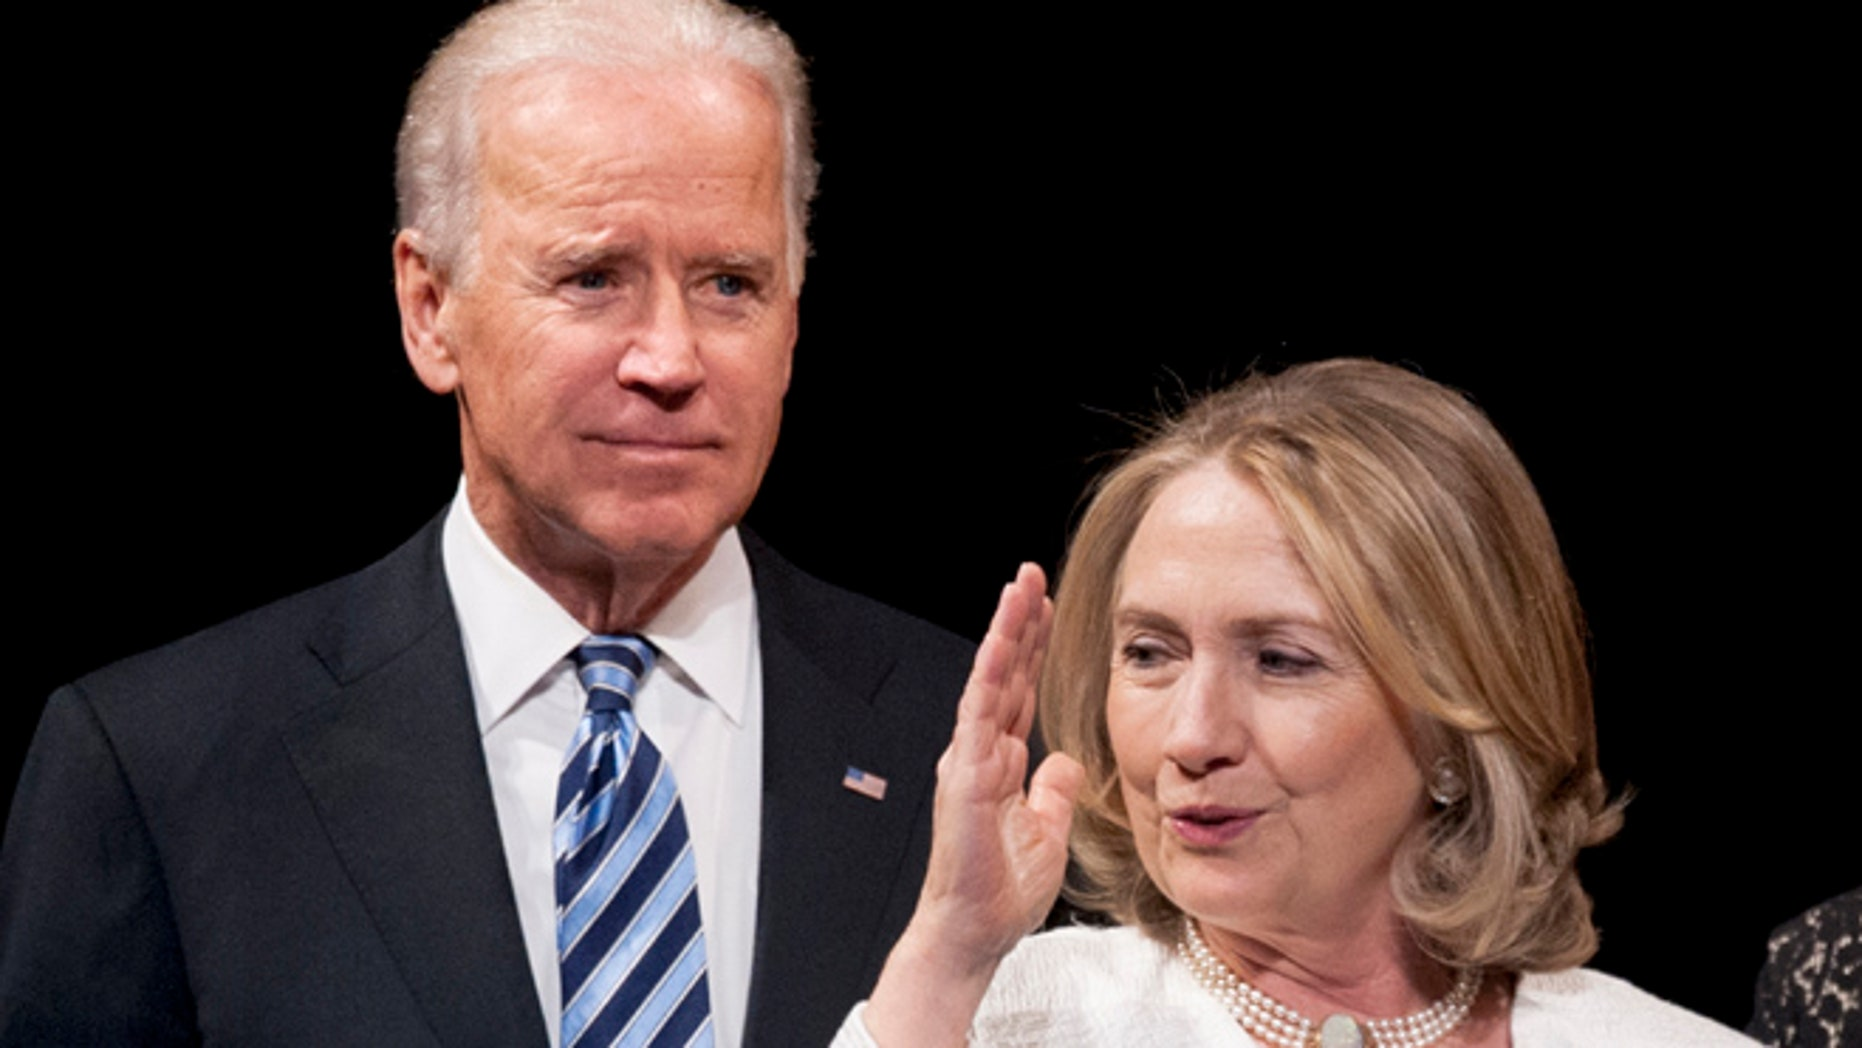 April 2, 2013: Vice President Joe Biden and former Secretary of State Hillary Rodham Clinton appear onstage at the Kennedy Center for the Performing Arts in Washington. (AP)